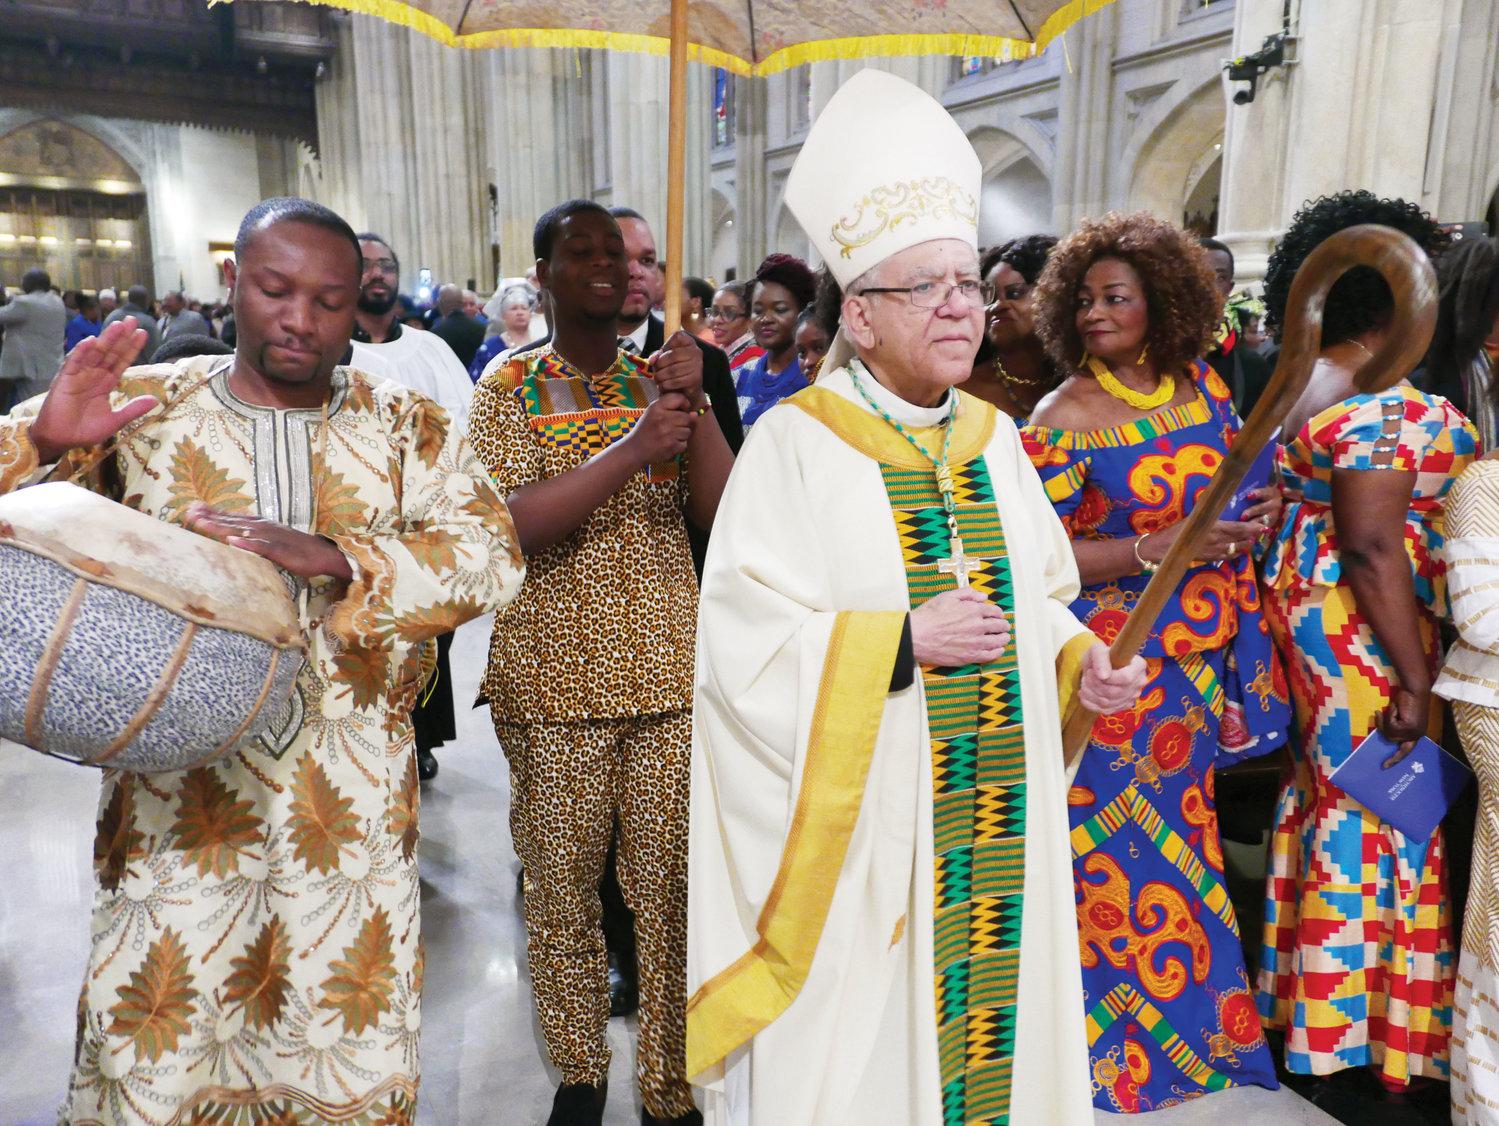 Auxiliary Bishop Guy Sansaricq of Brooklyn was the principal celebrant of this year's Black History Month Mass at St. Patrick's Cathedral Feb. 3.